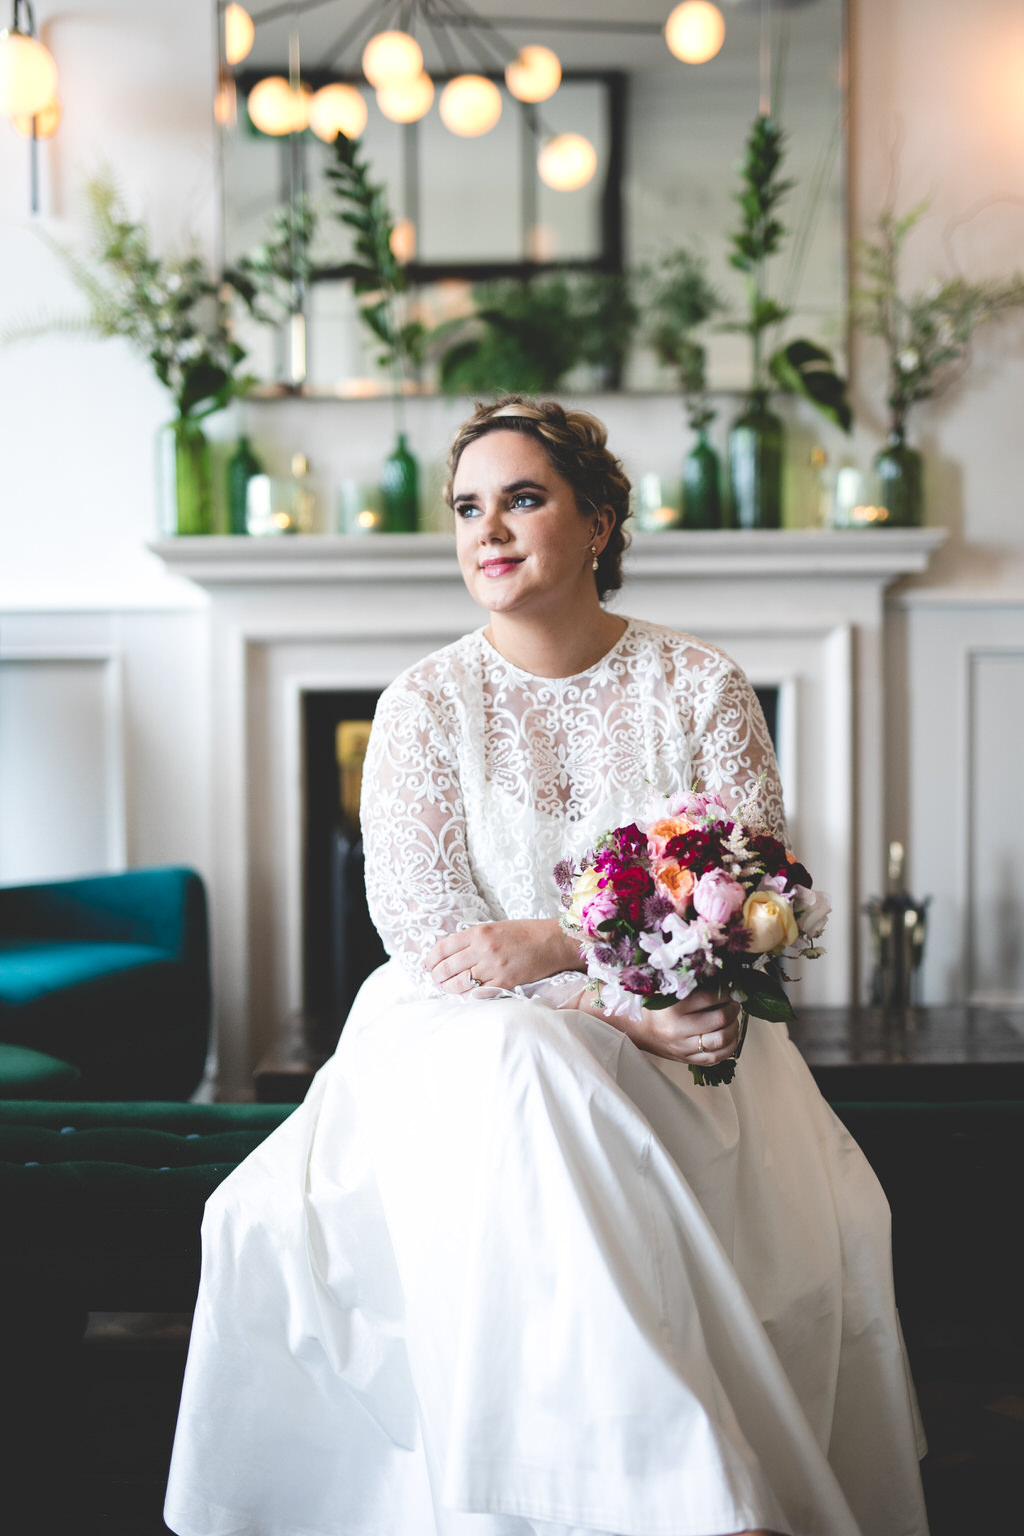 Wild things wed photography - Portrait of a stylish bride